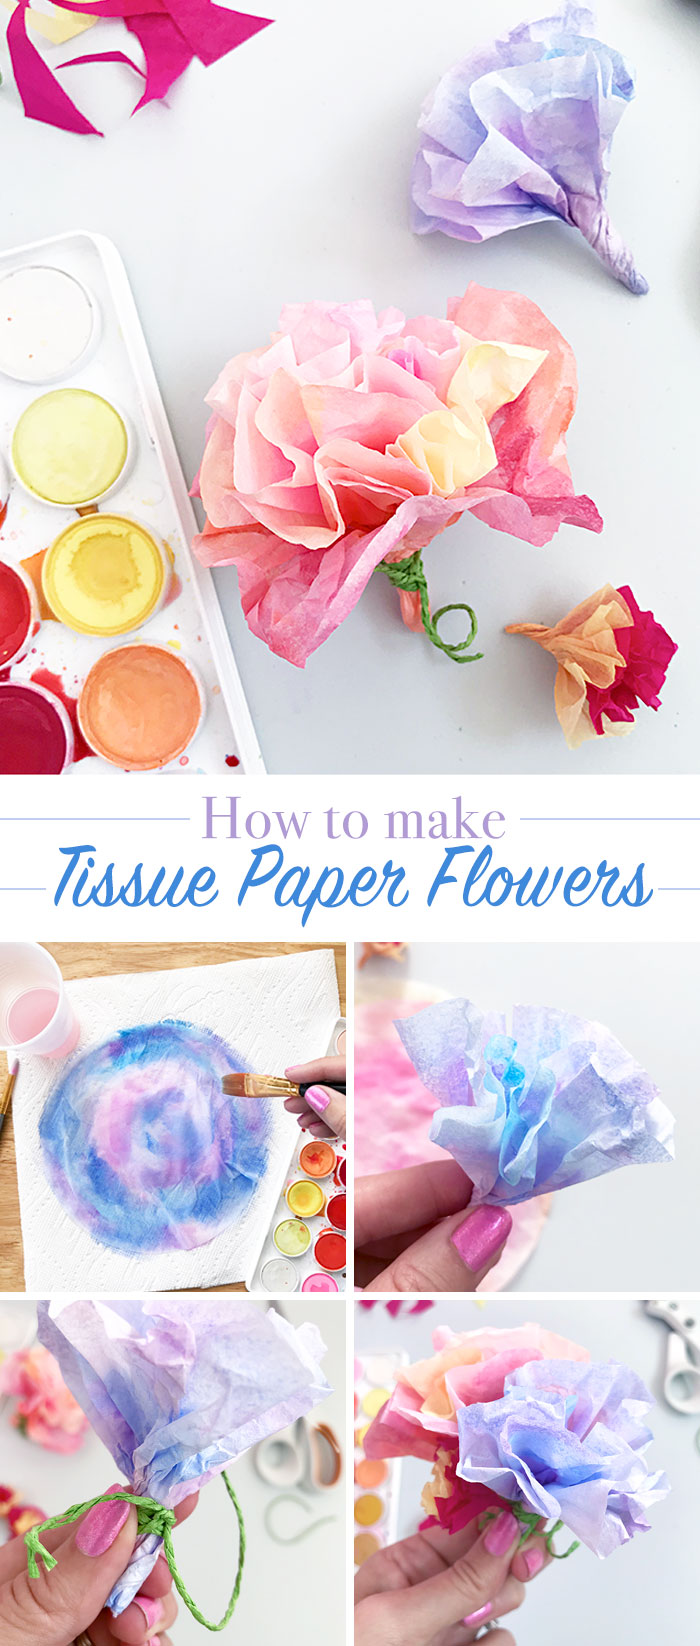 How to make easy tissue paper flowers in just a few simple steps